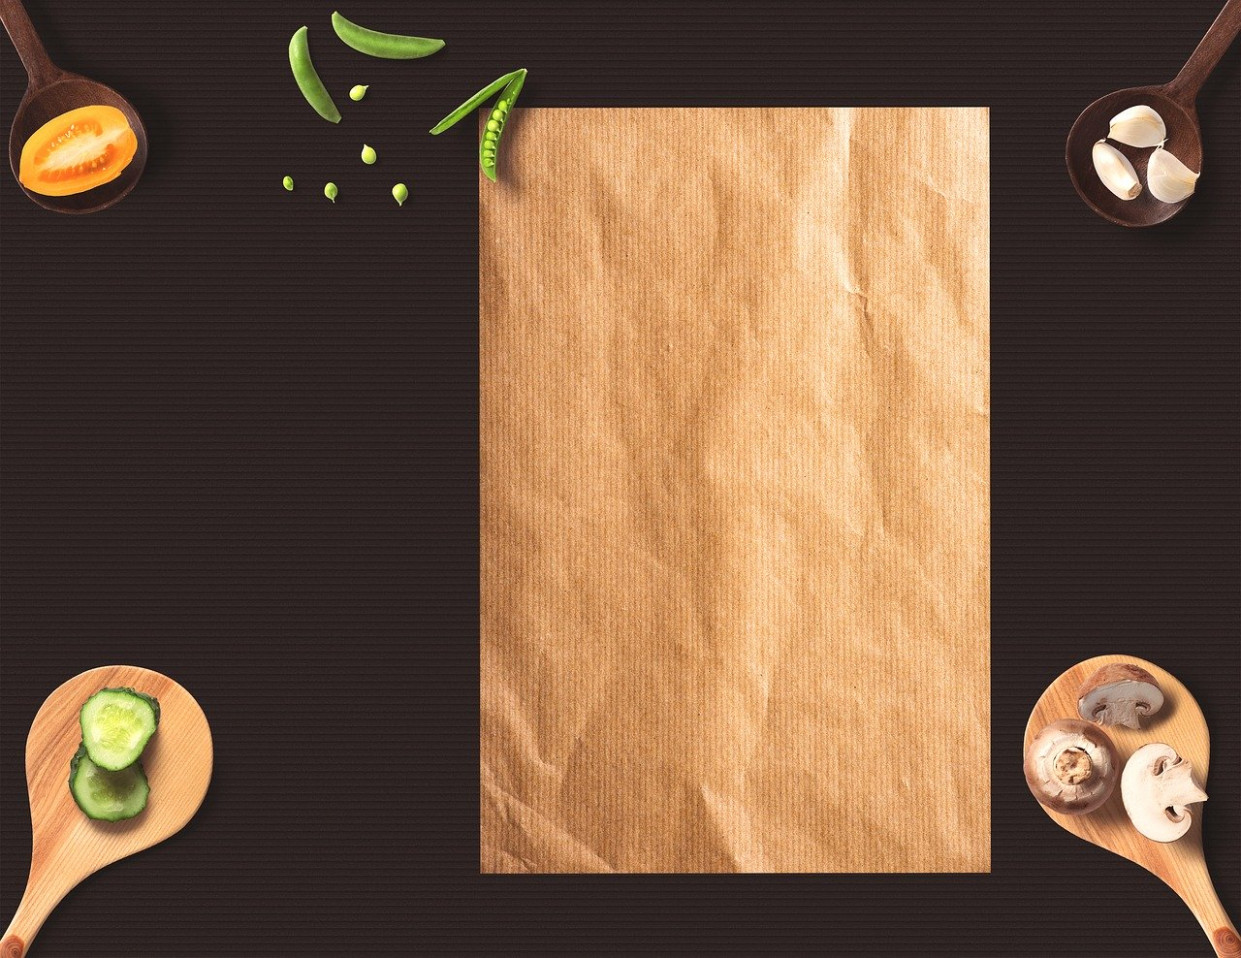 Menu, Paper, Background, Wooden Spoon - recipes to eat healthy